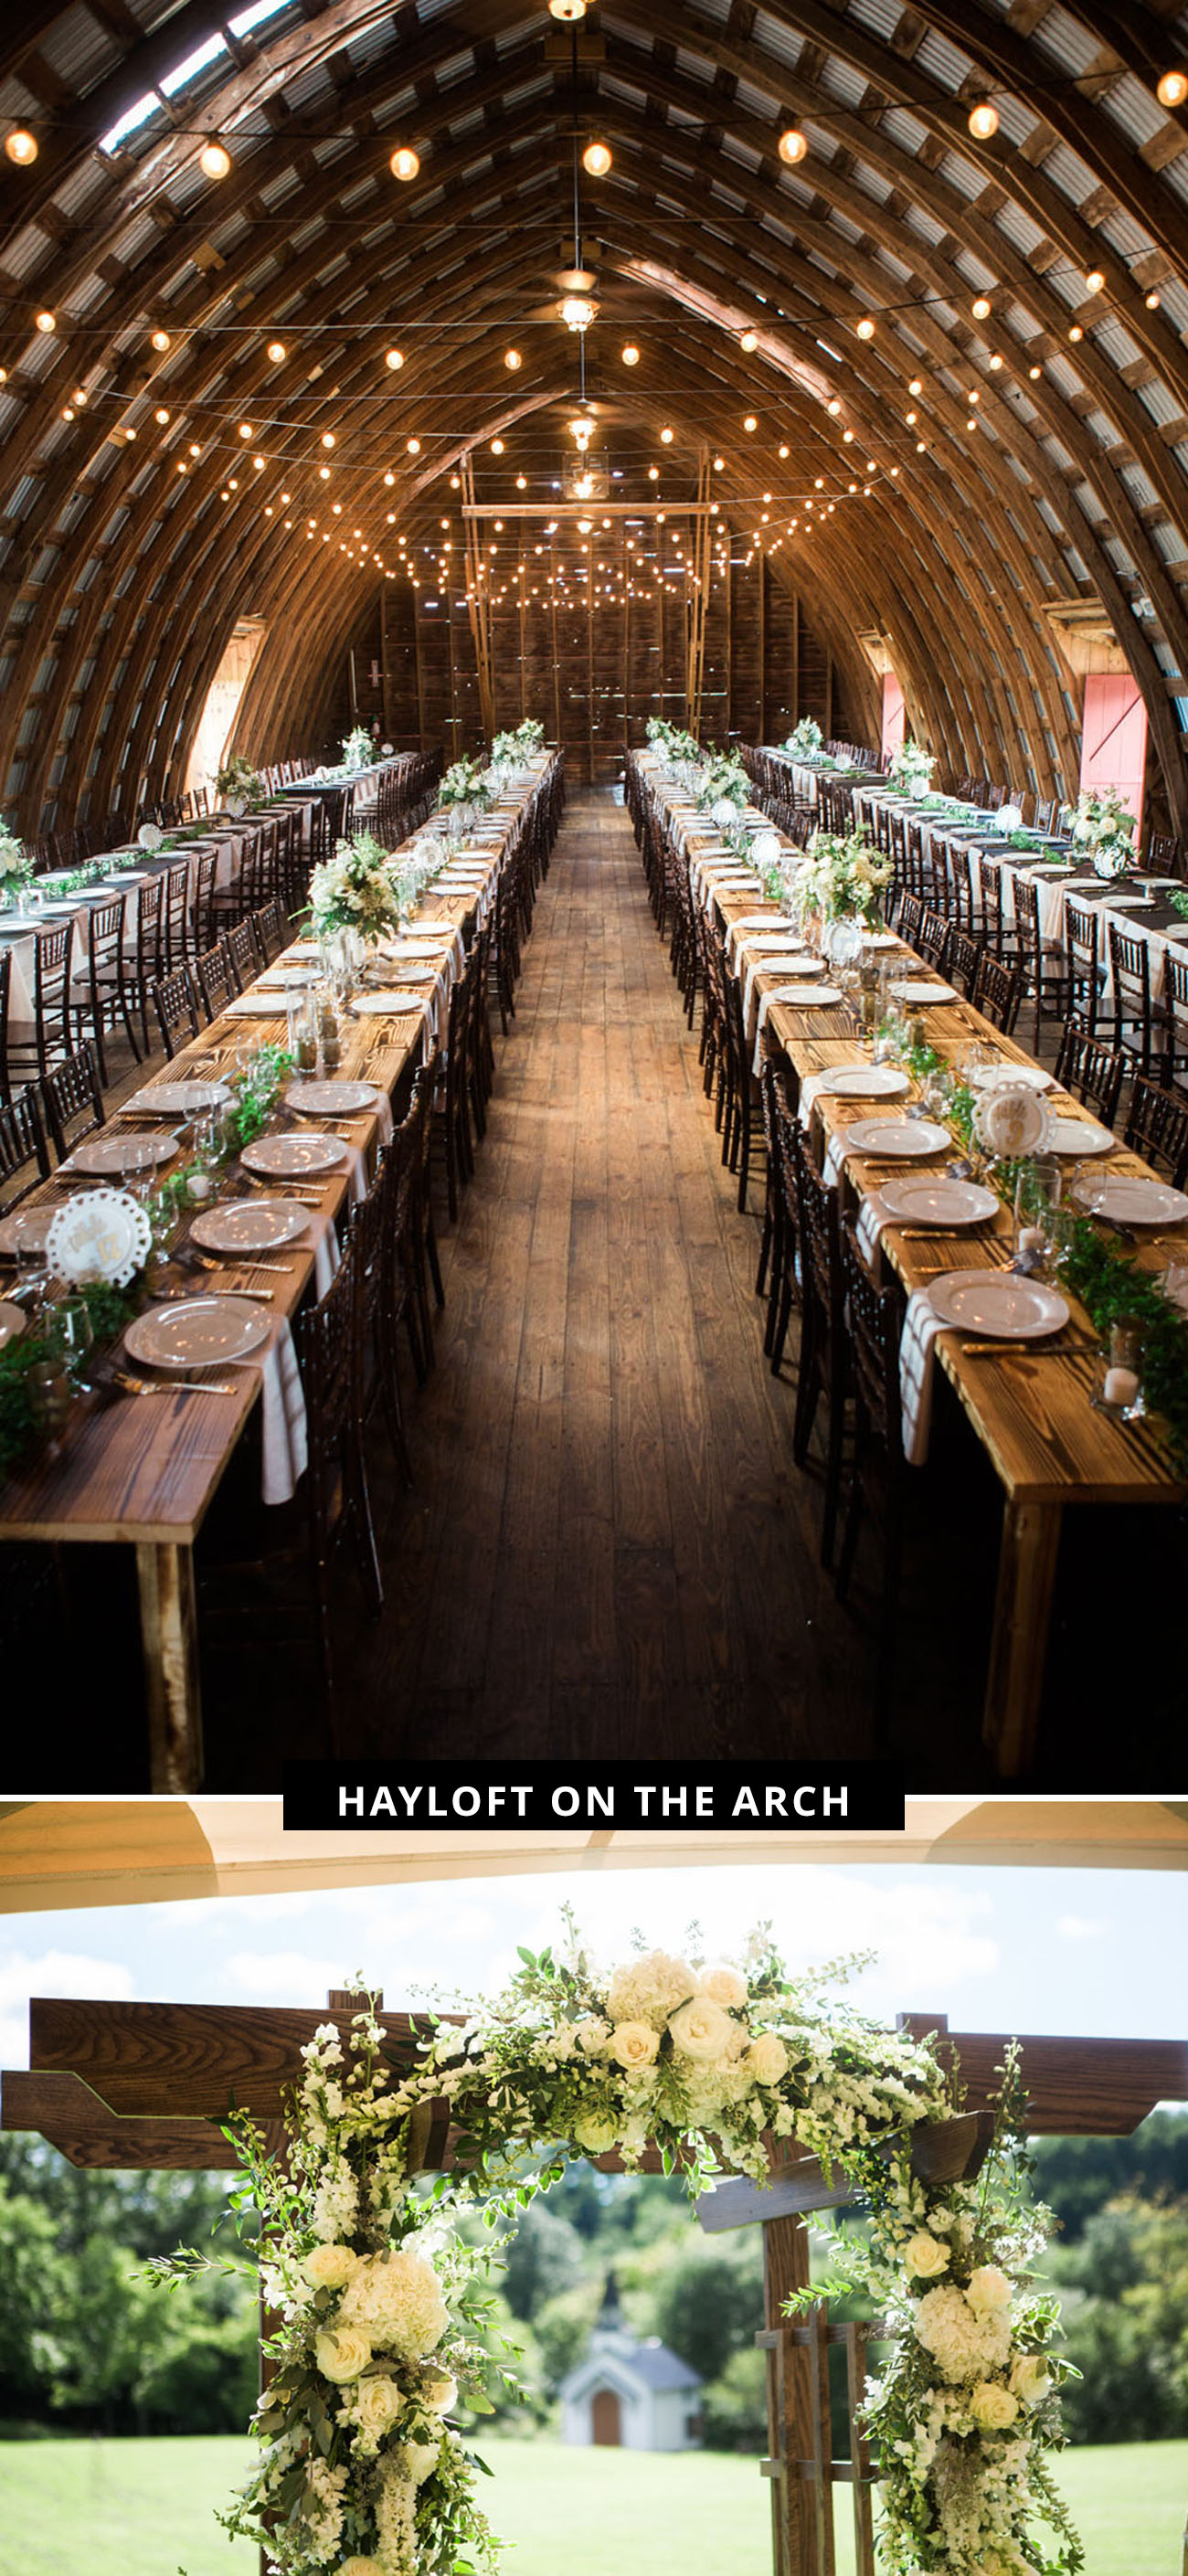 Wedding Barns Near Me.The 17 Coolest Barns To Get Married At In The United States Green